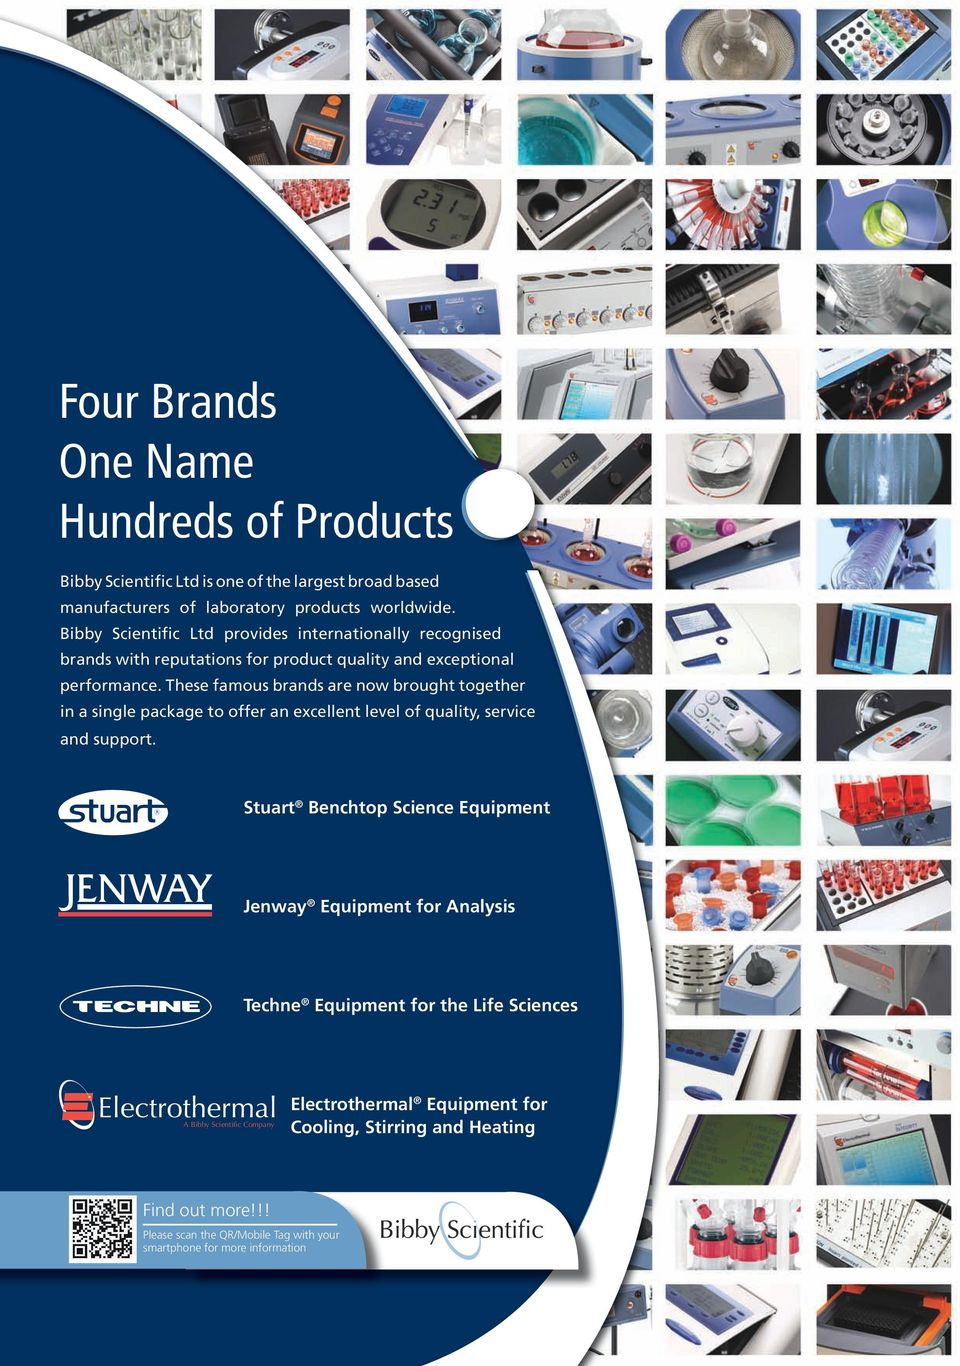 These famous brands are now brought together in a single package to offer an excellent level of quality, service and support.